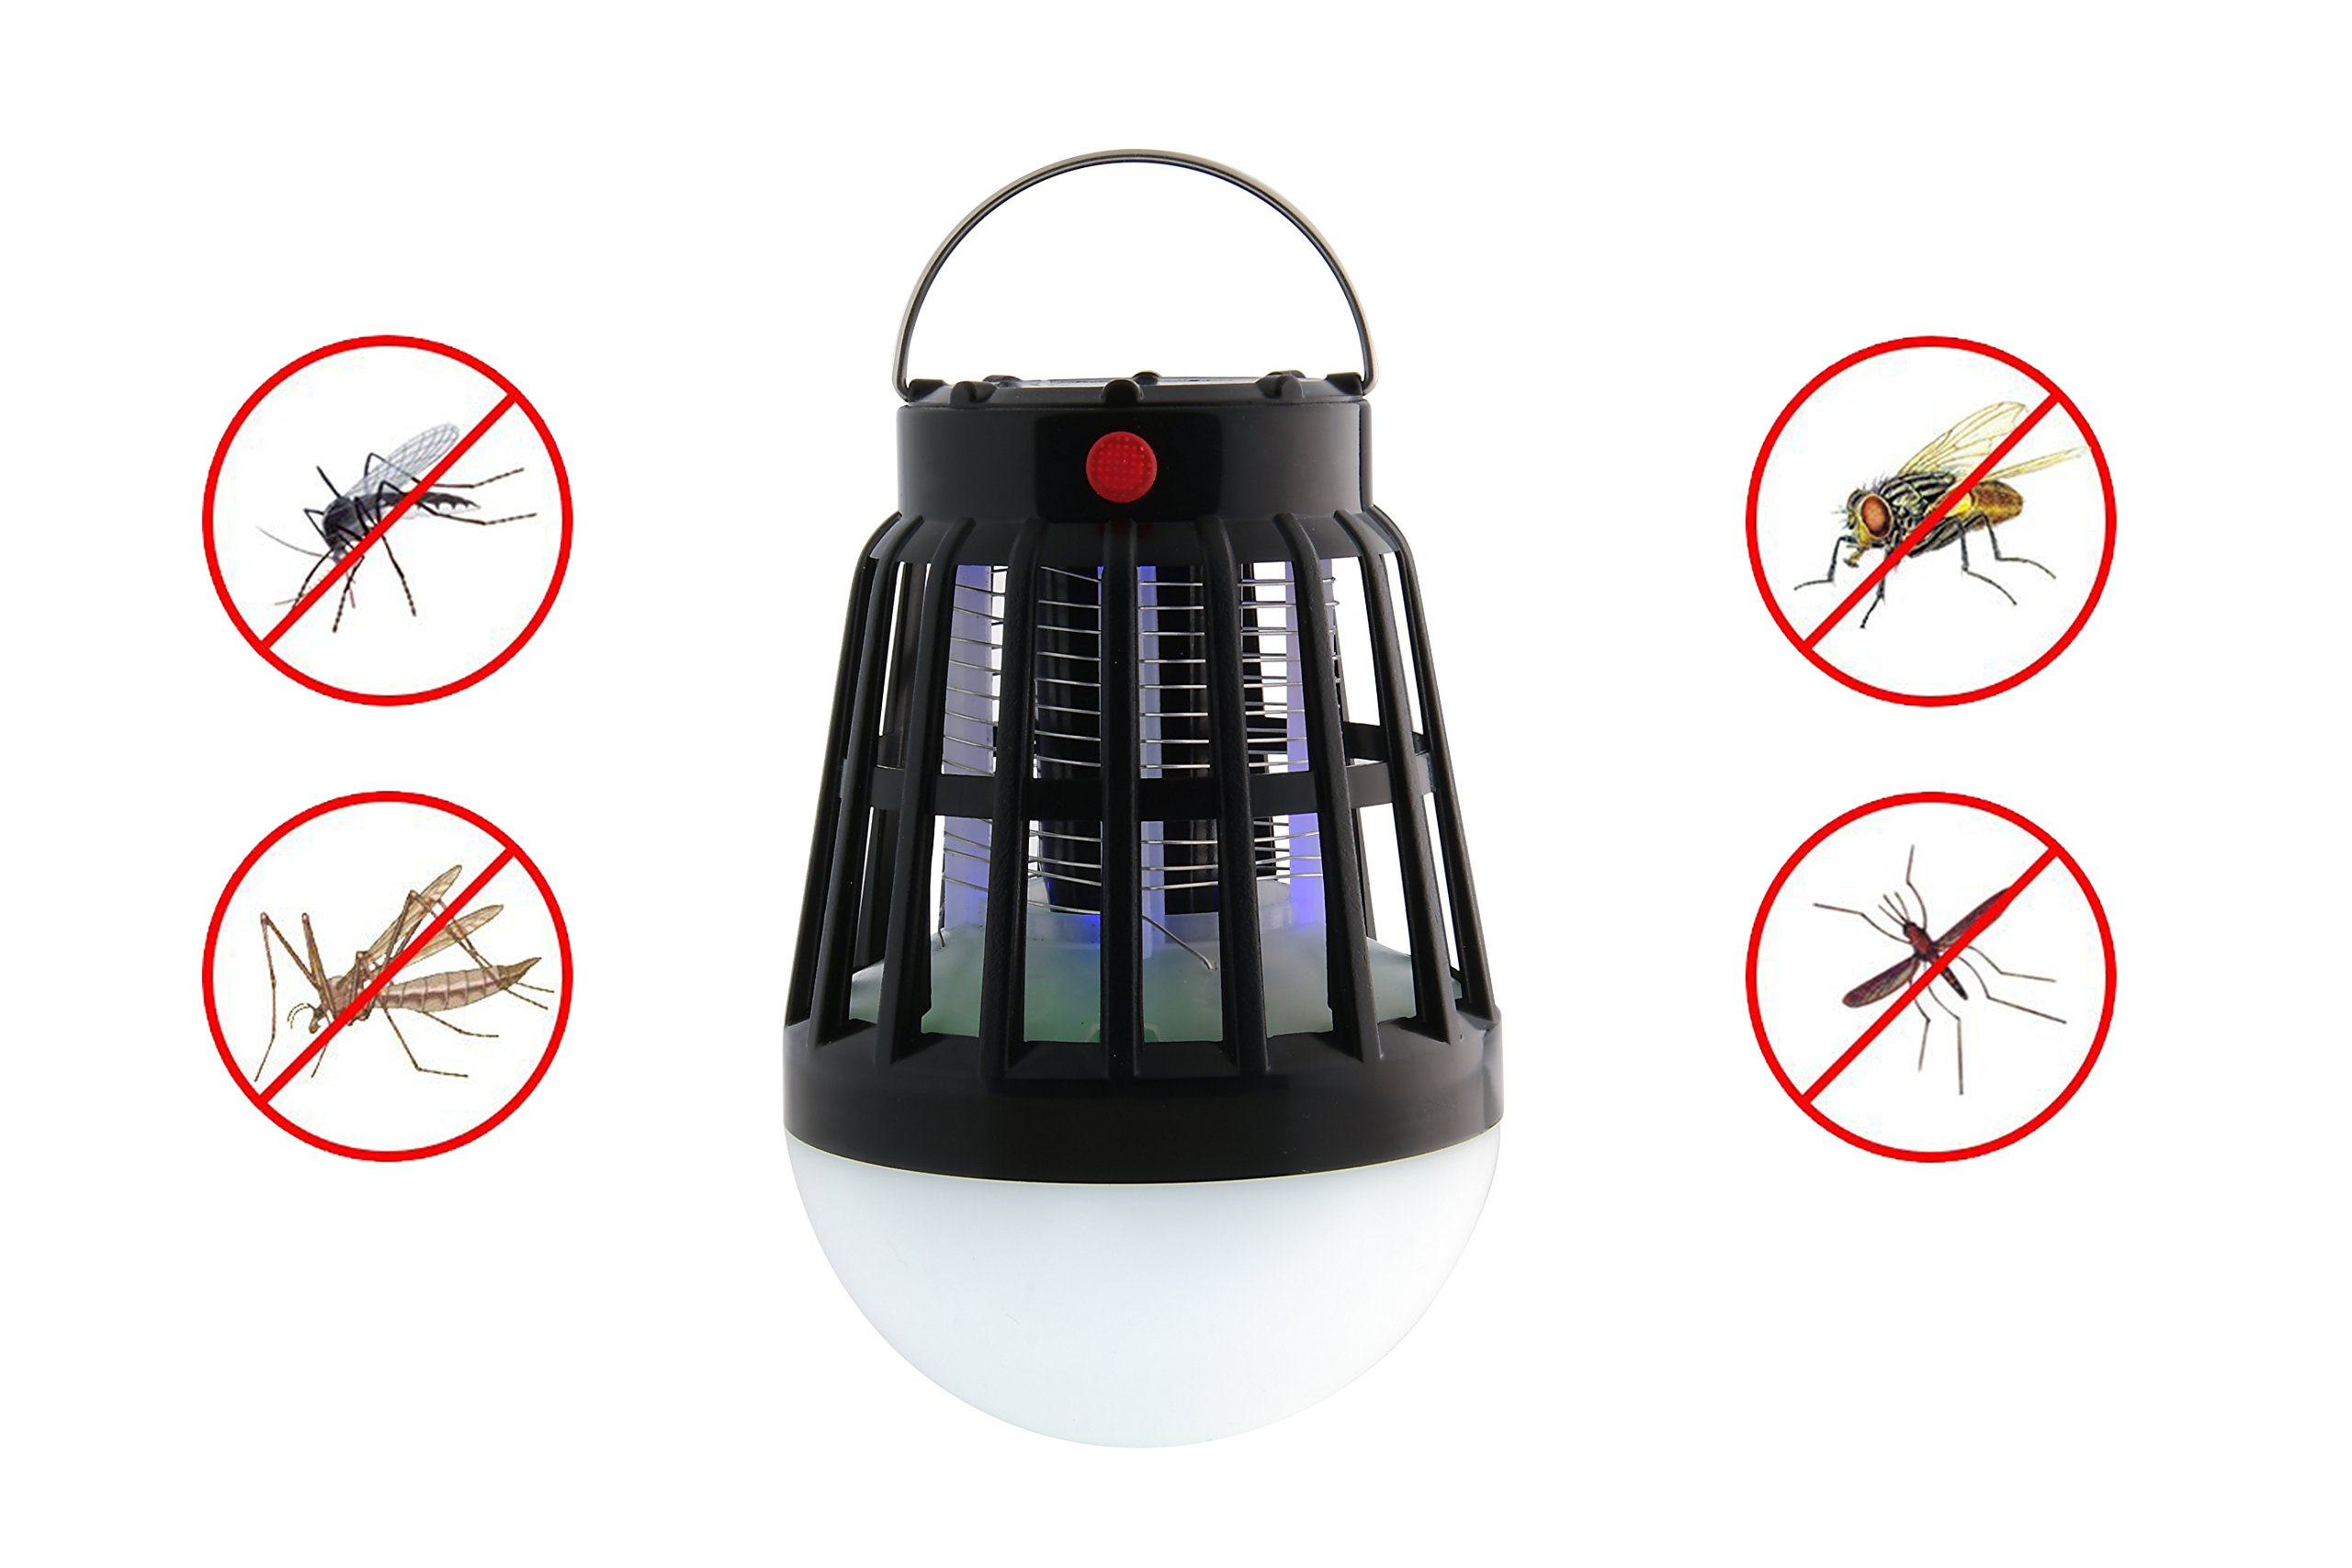 BLQH Solar Powered Bug Zapper Light, Solar Mosquito Killer Insect/Fly/Mosquitoes/Moths/Flies Killer Trap Pest Control LED Garden Lawn Lamp Electronic Insect Killer Waterproof for Outdoor Use